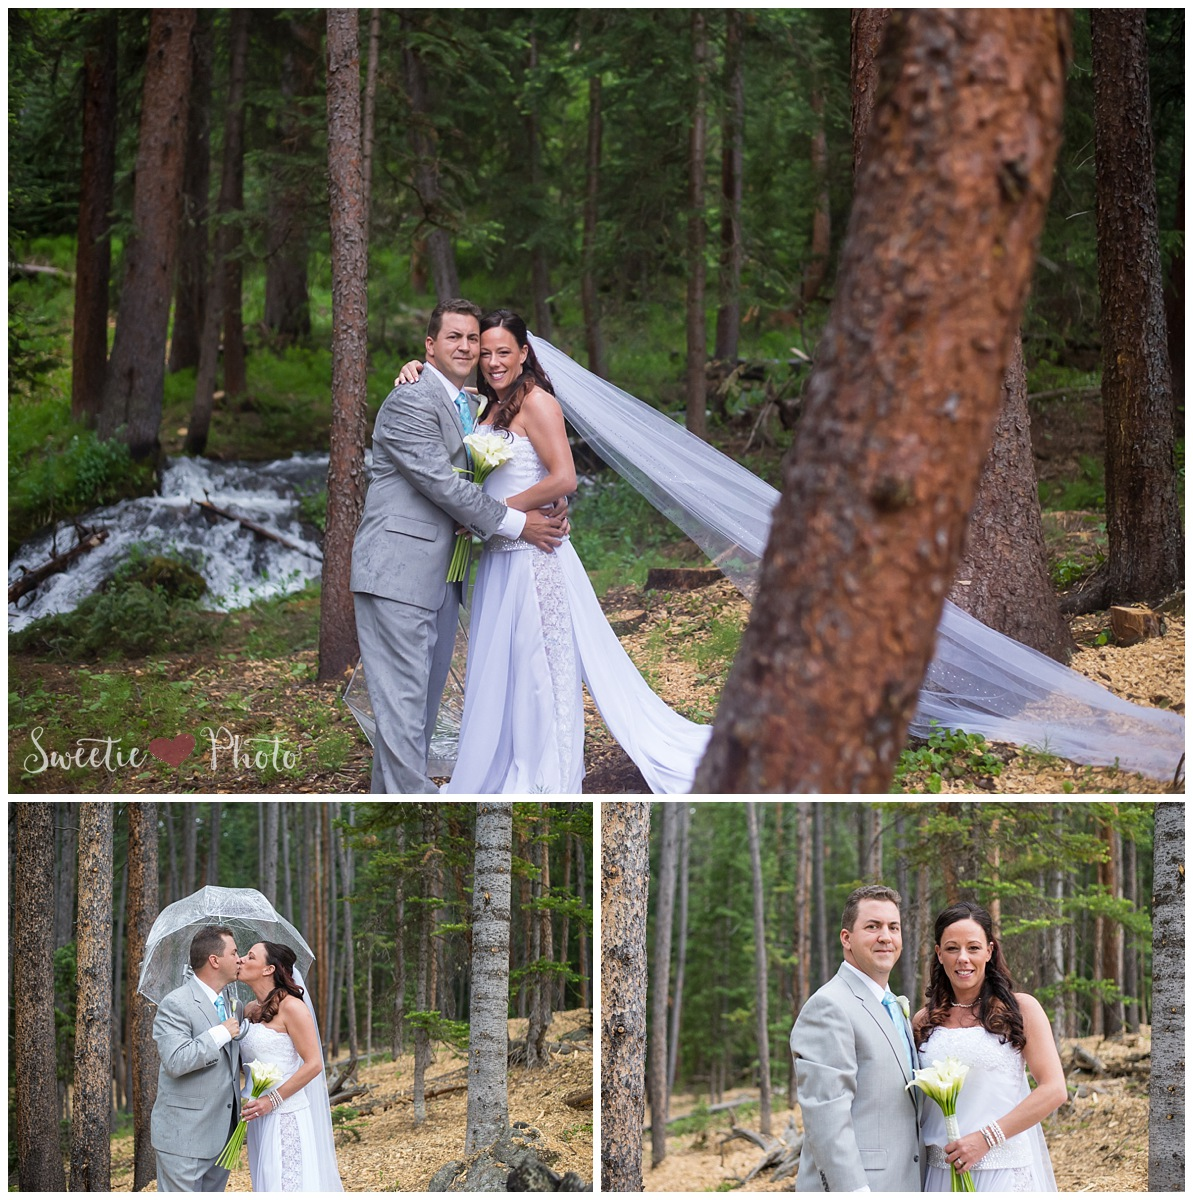 Intimate Breckenridge Wedding| Bridal Portraits | Sweetie Photo, Colorado Based Wedding Photography